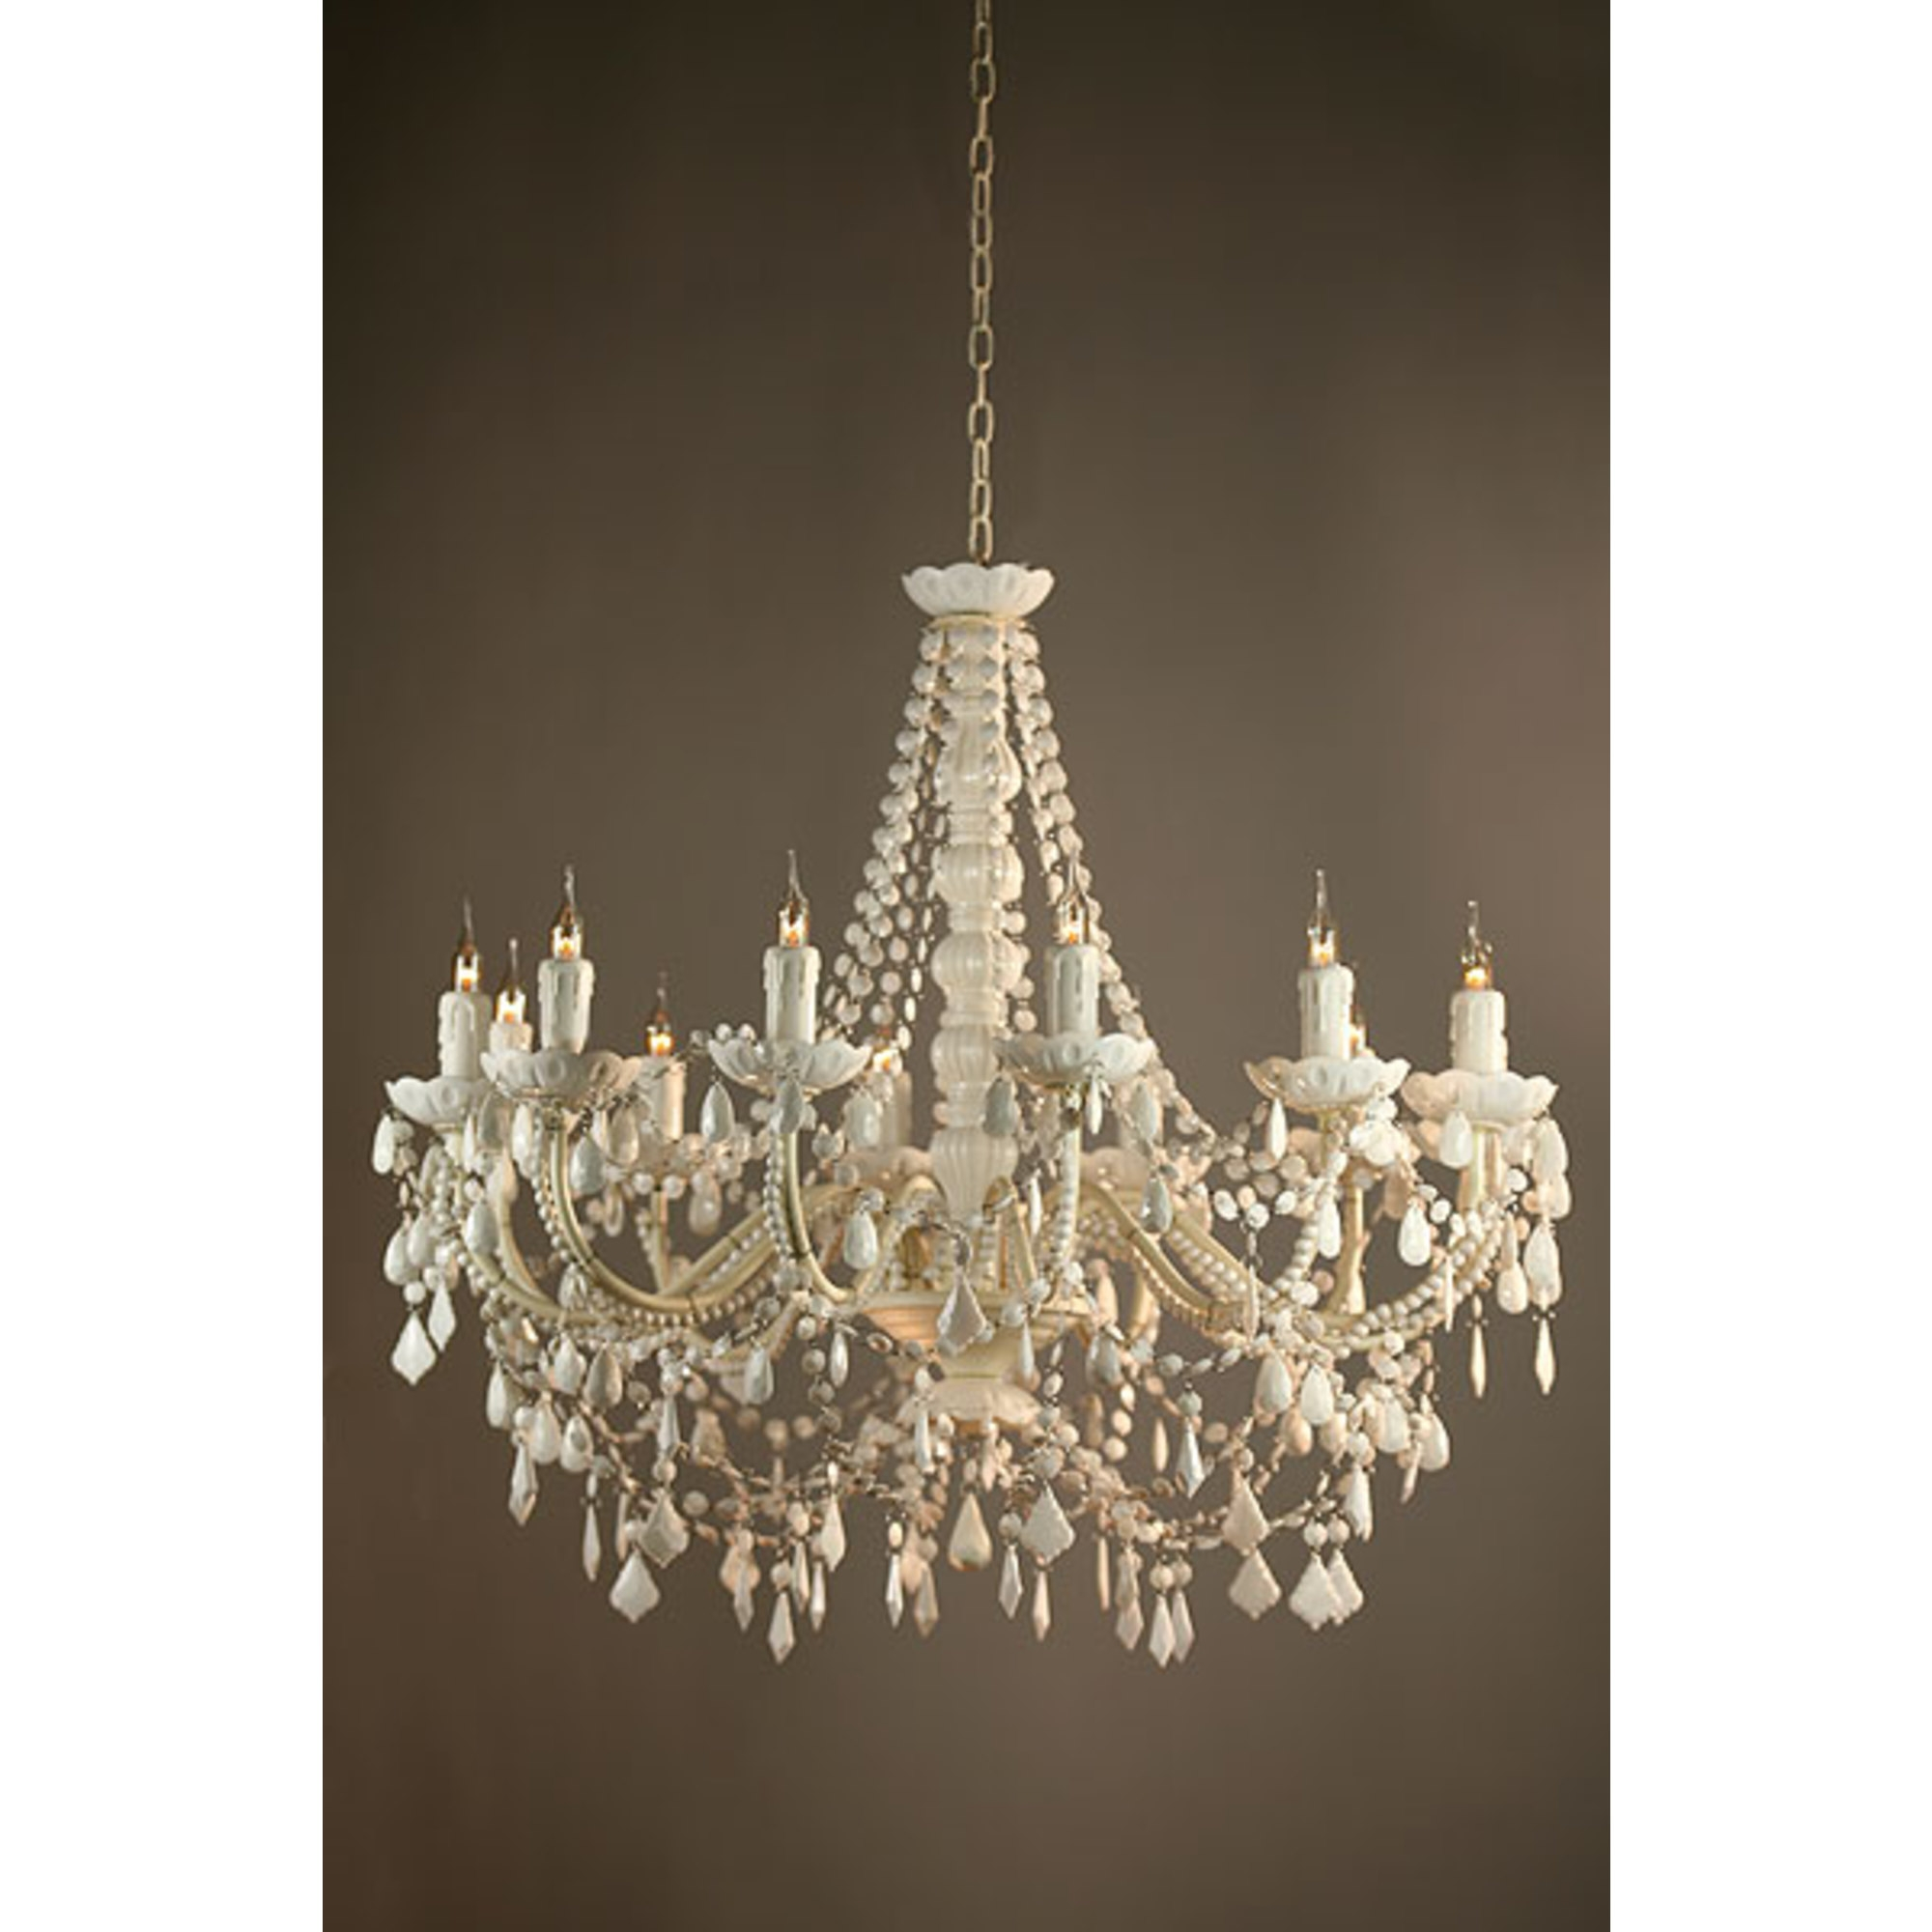 Suzanne 12 Light Chandelier - White